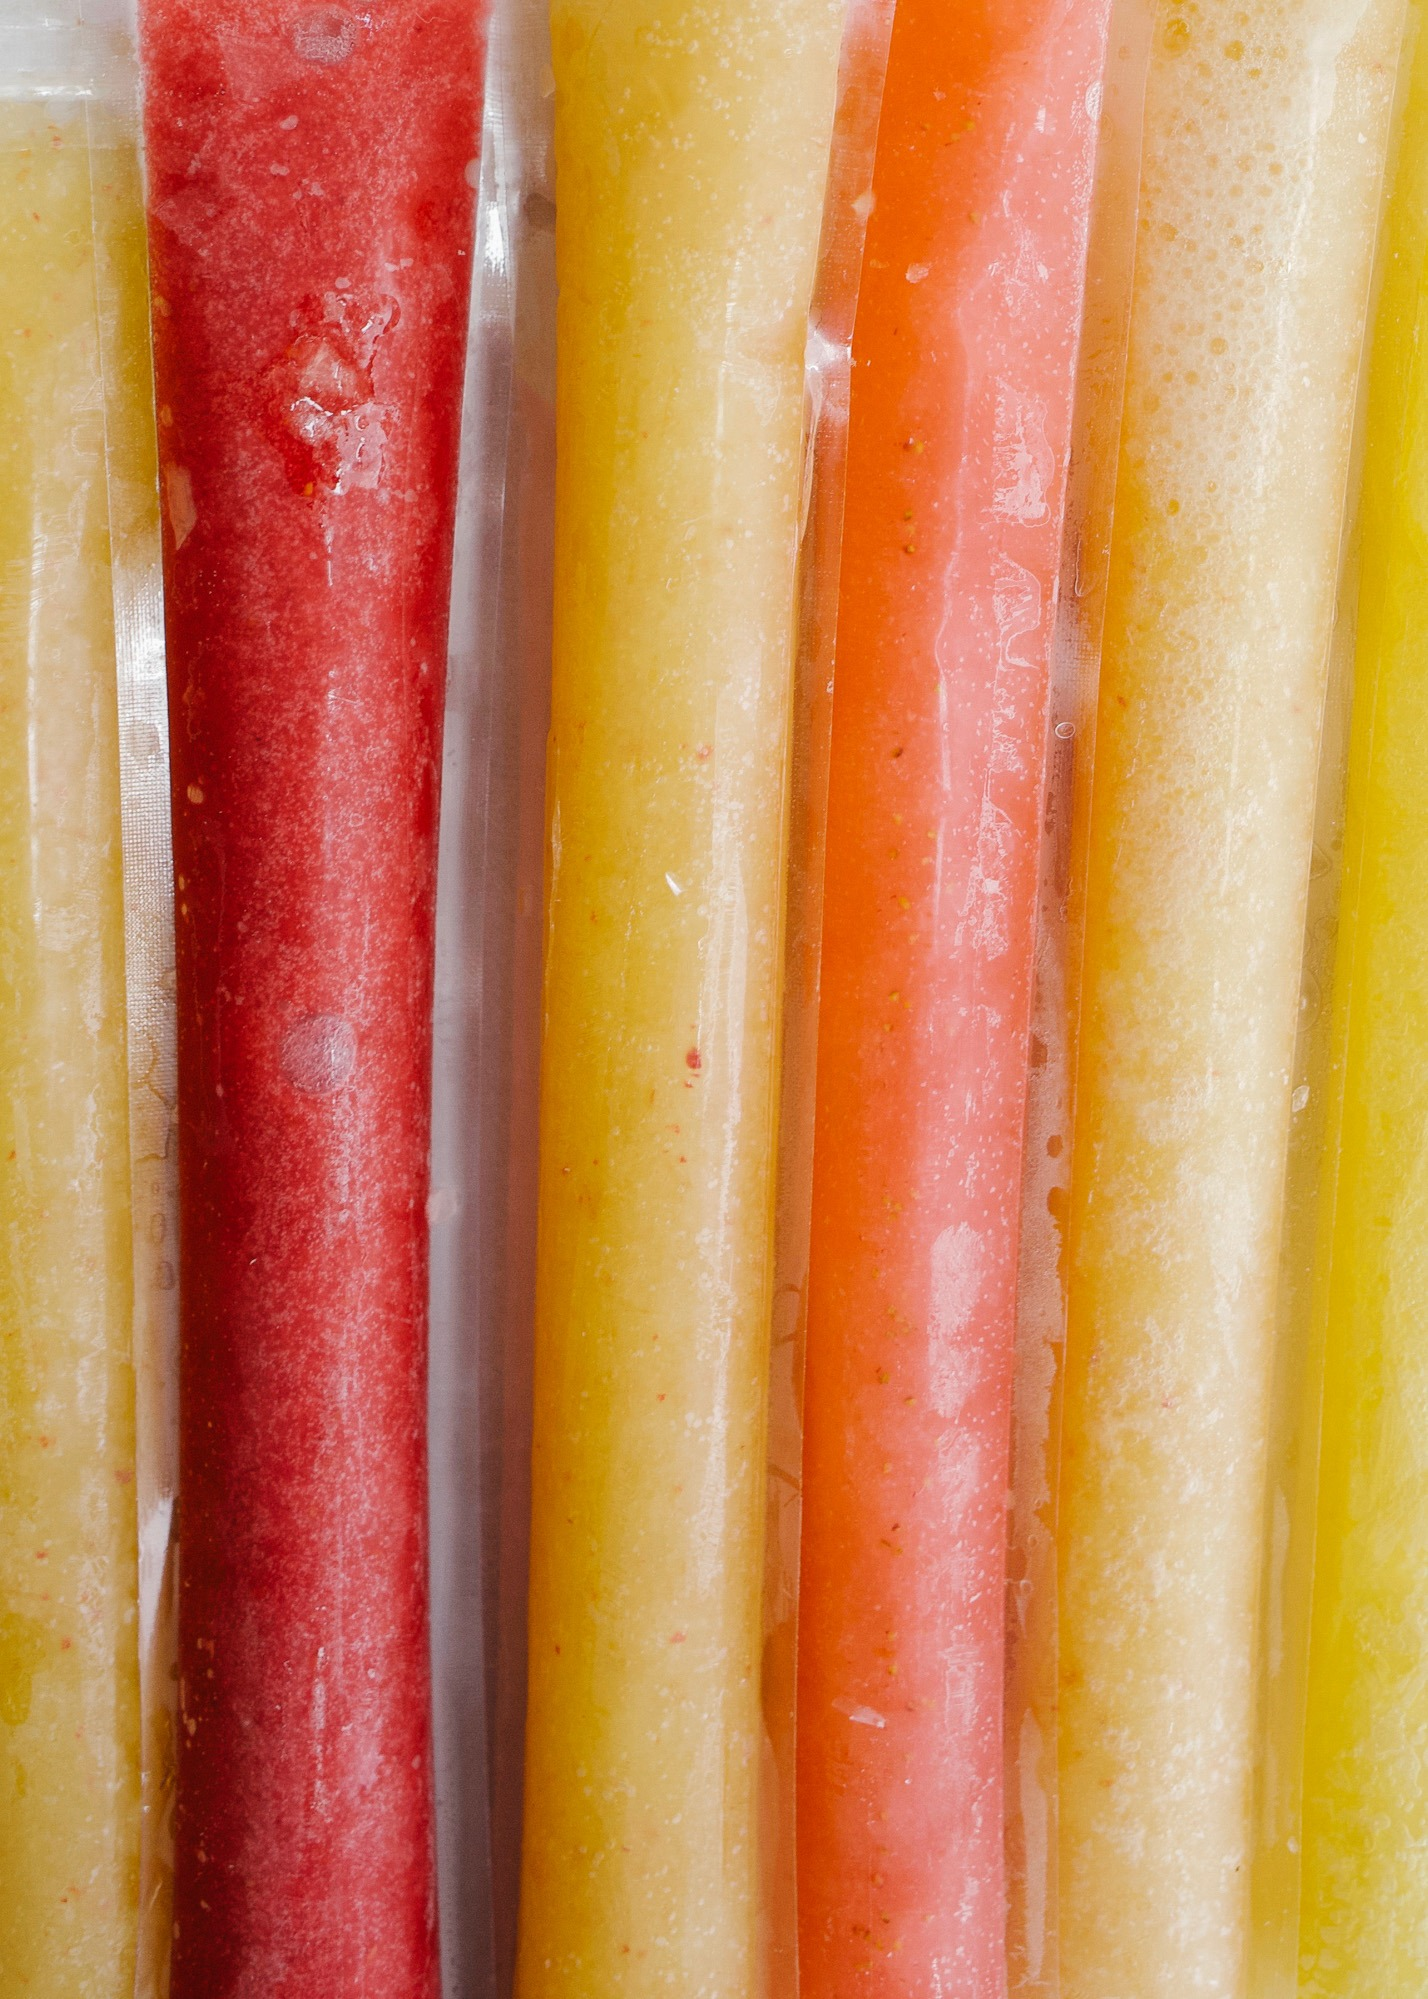 Champagne Cocktail Popsicles by Wood and Spoon. Learn to make homemade mimosa push pops, Bellini popsicles, and strawberry lime champagne frozen treats! These are made in plastic sleeves with fresh real strawberries, peaches, and orange juice and sparkling wine. Find the recipe and learn how to make these boozy summertime frozen desserts on thewoodandspoon.com